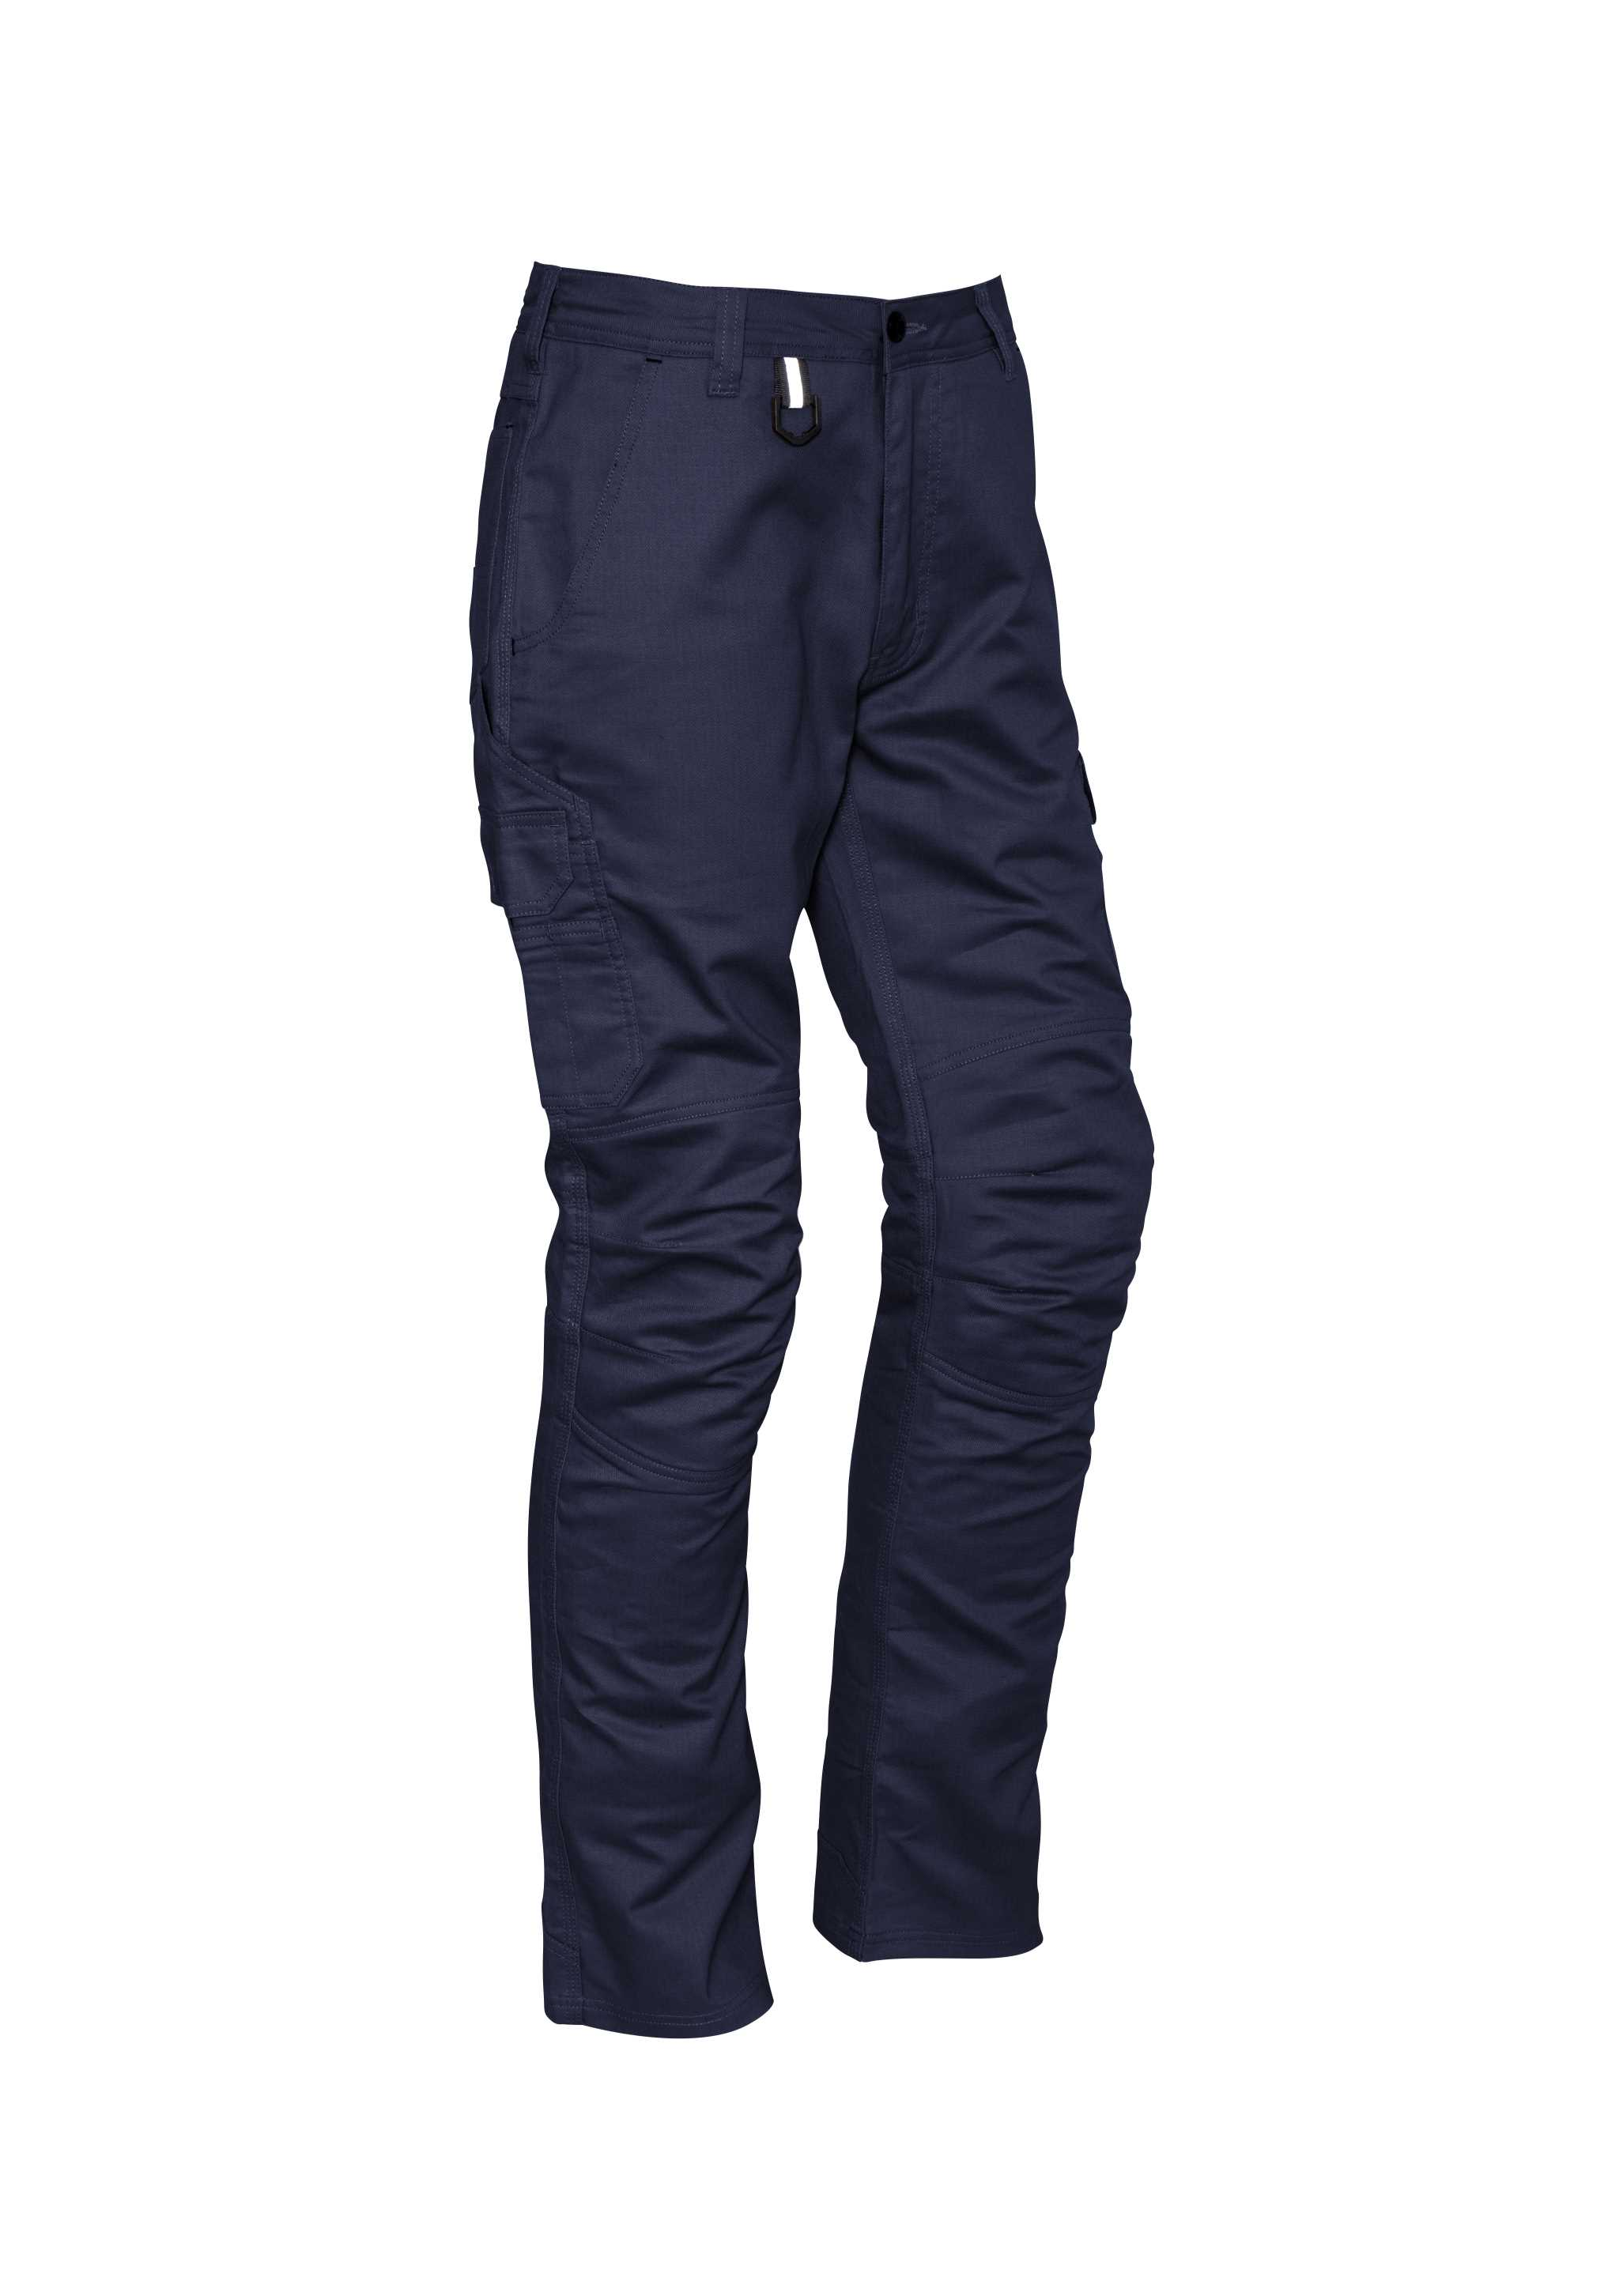 ZP504_Navy_FrontSide